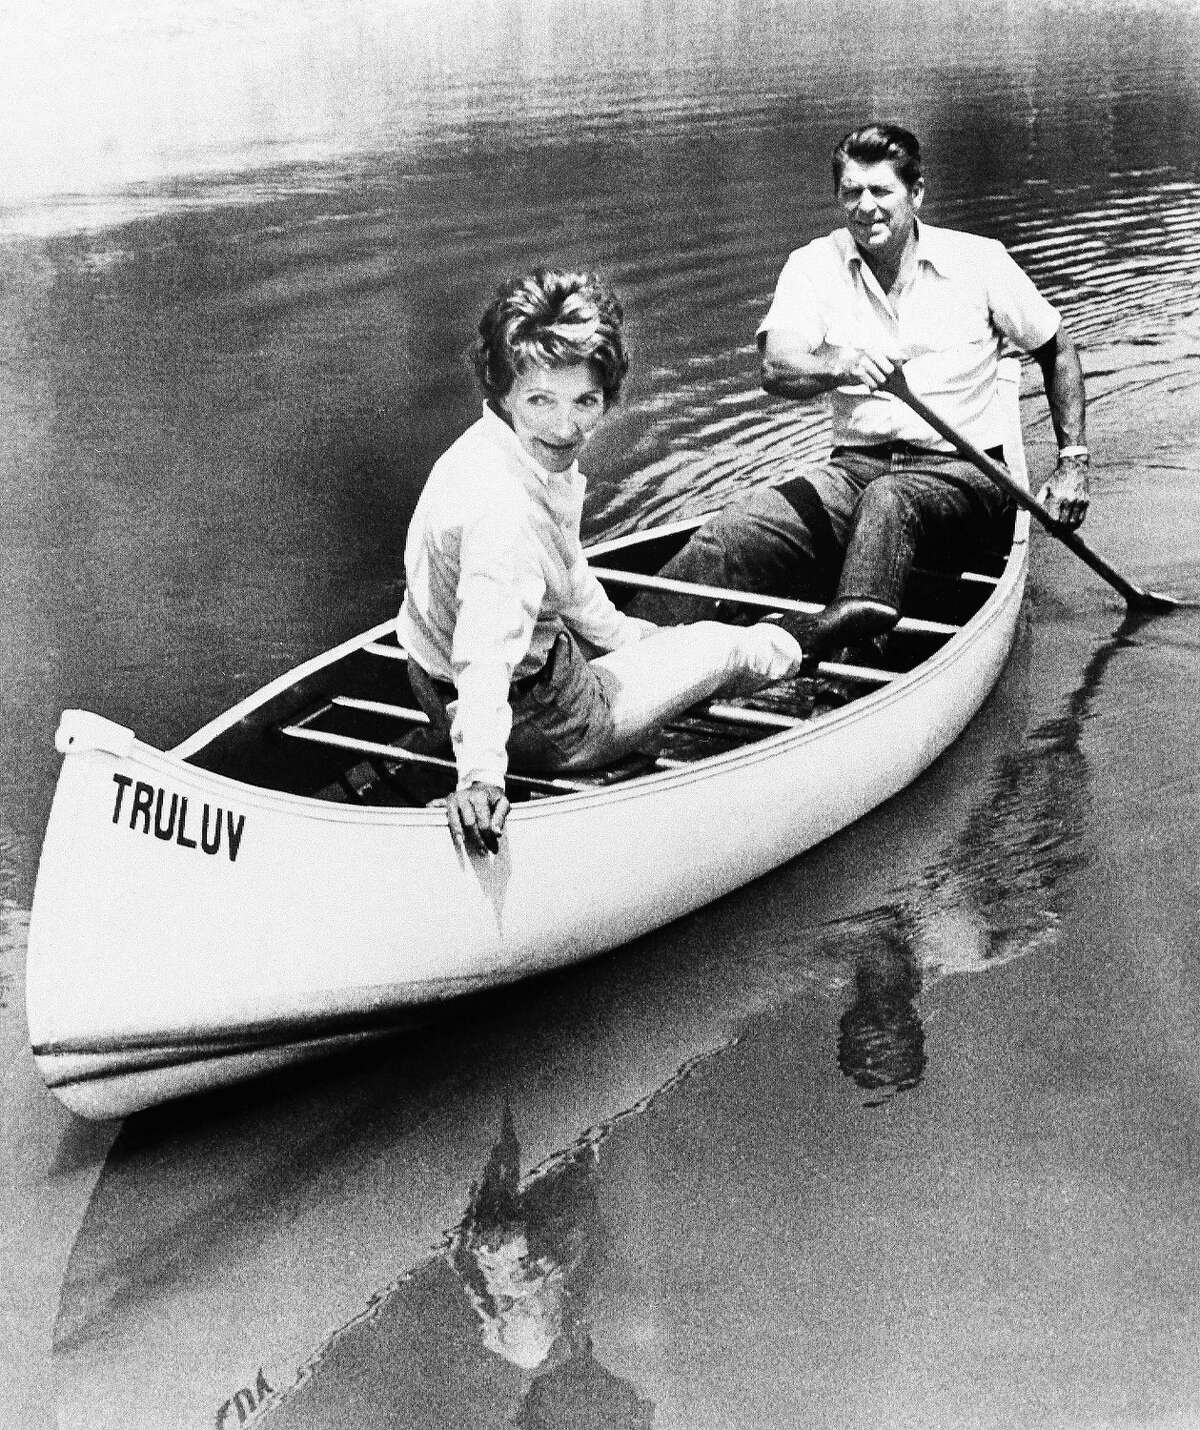 Ronald Reagan took his wife Nancy for a canoe ride on a pond at their mountaintop ranch near Santa Barbara, Calif., Monday, July 27, 1976.